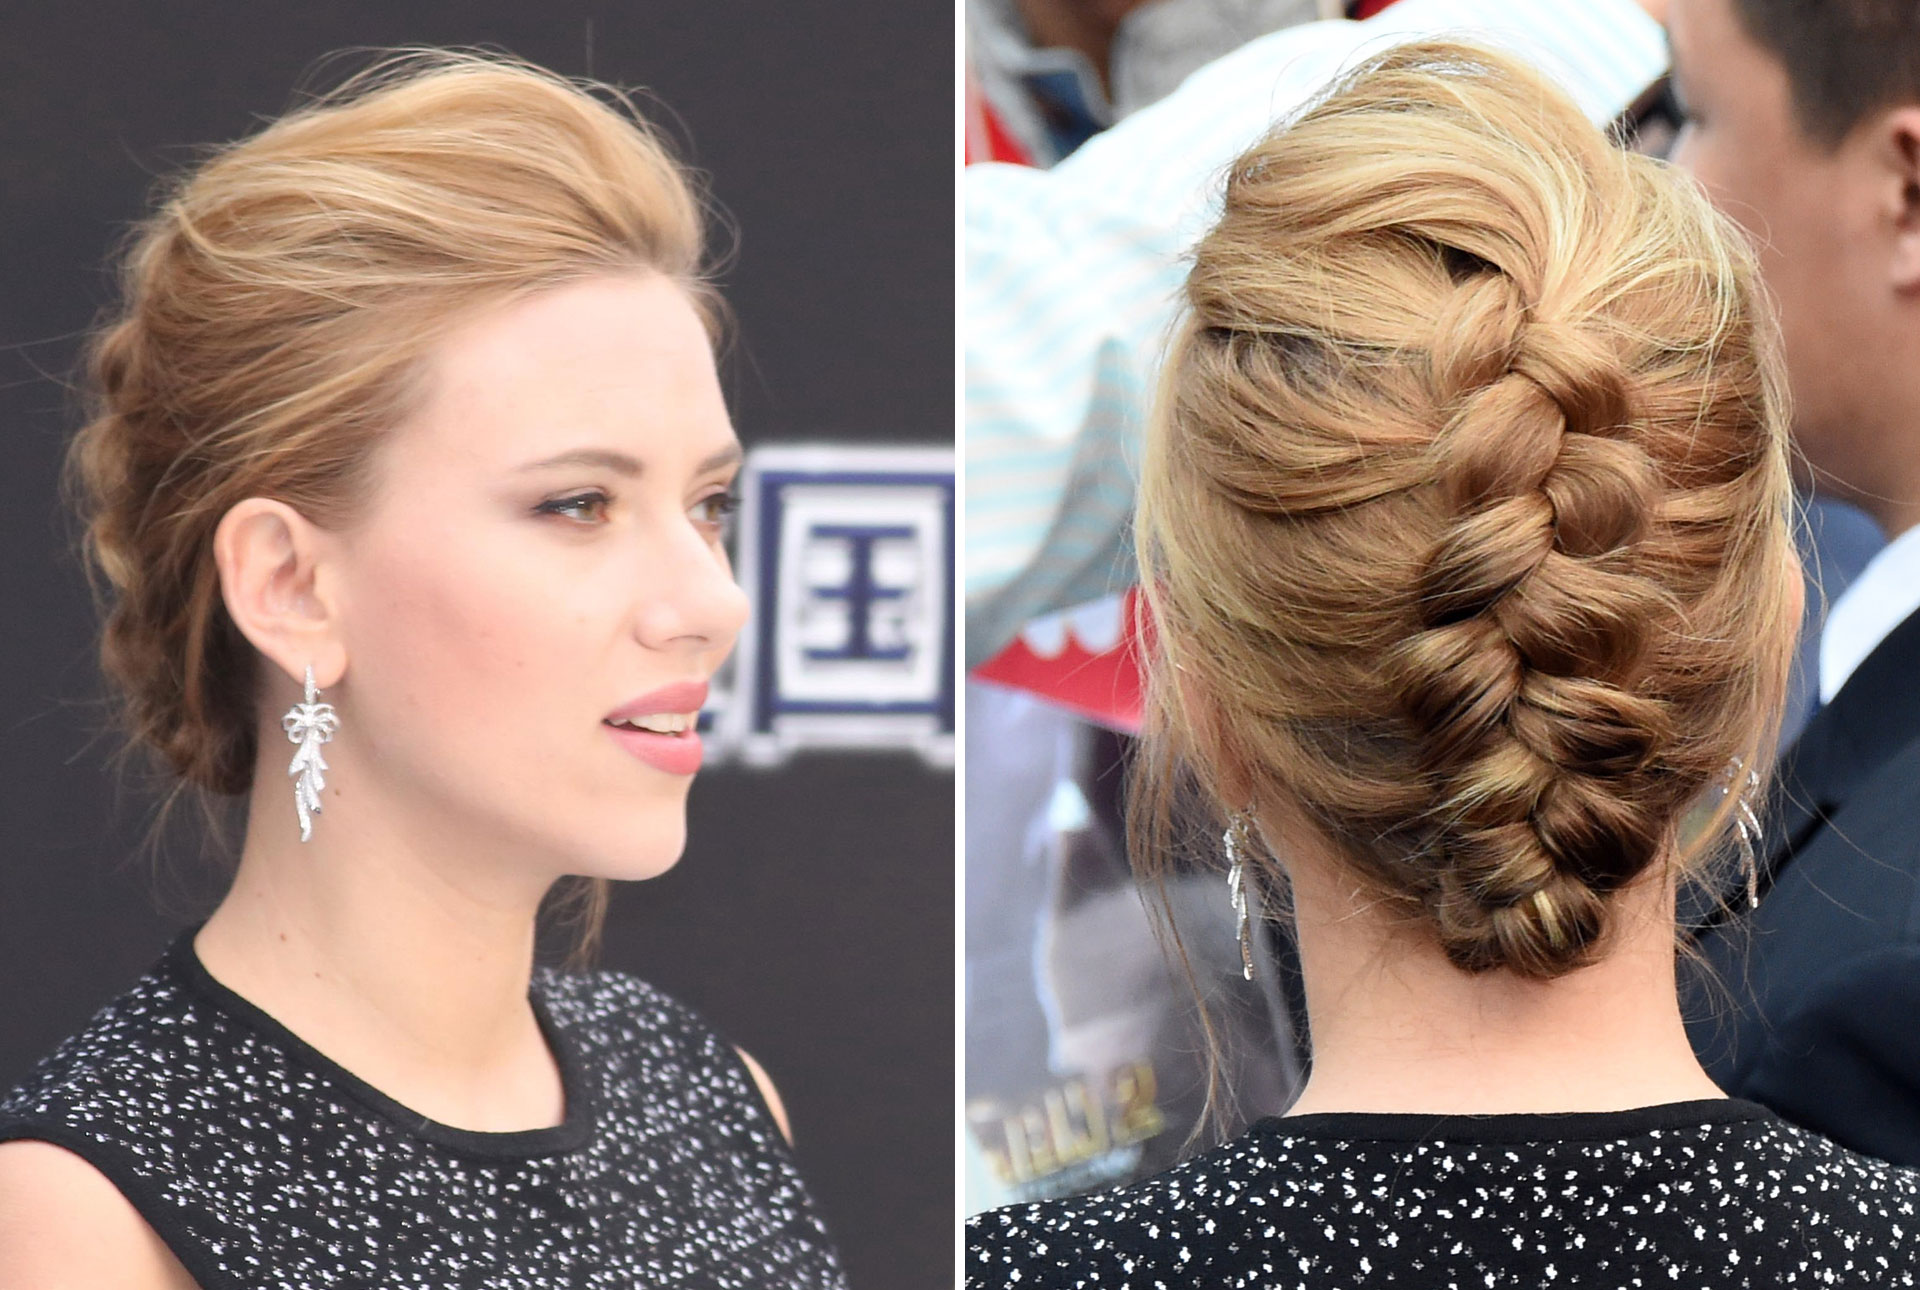 16 Best Guest Hairstyles for Every Kind of Wedding - Easy Wedding ...